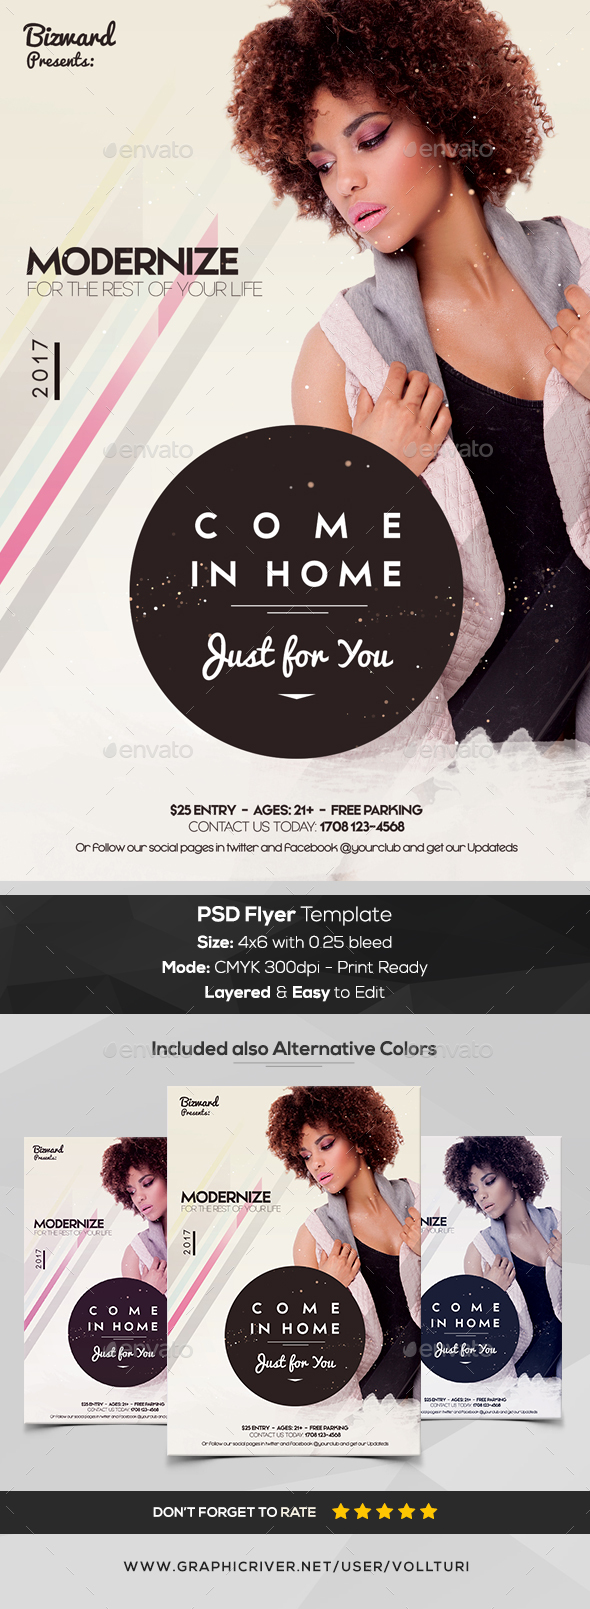 Come in Home - PSD Flyer Template - Flyers Print Templates